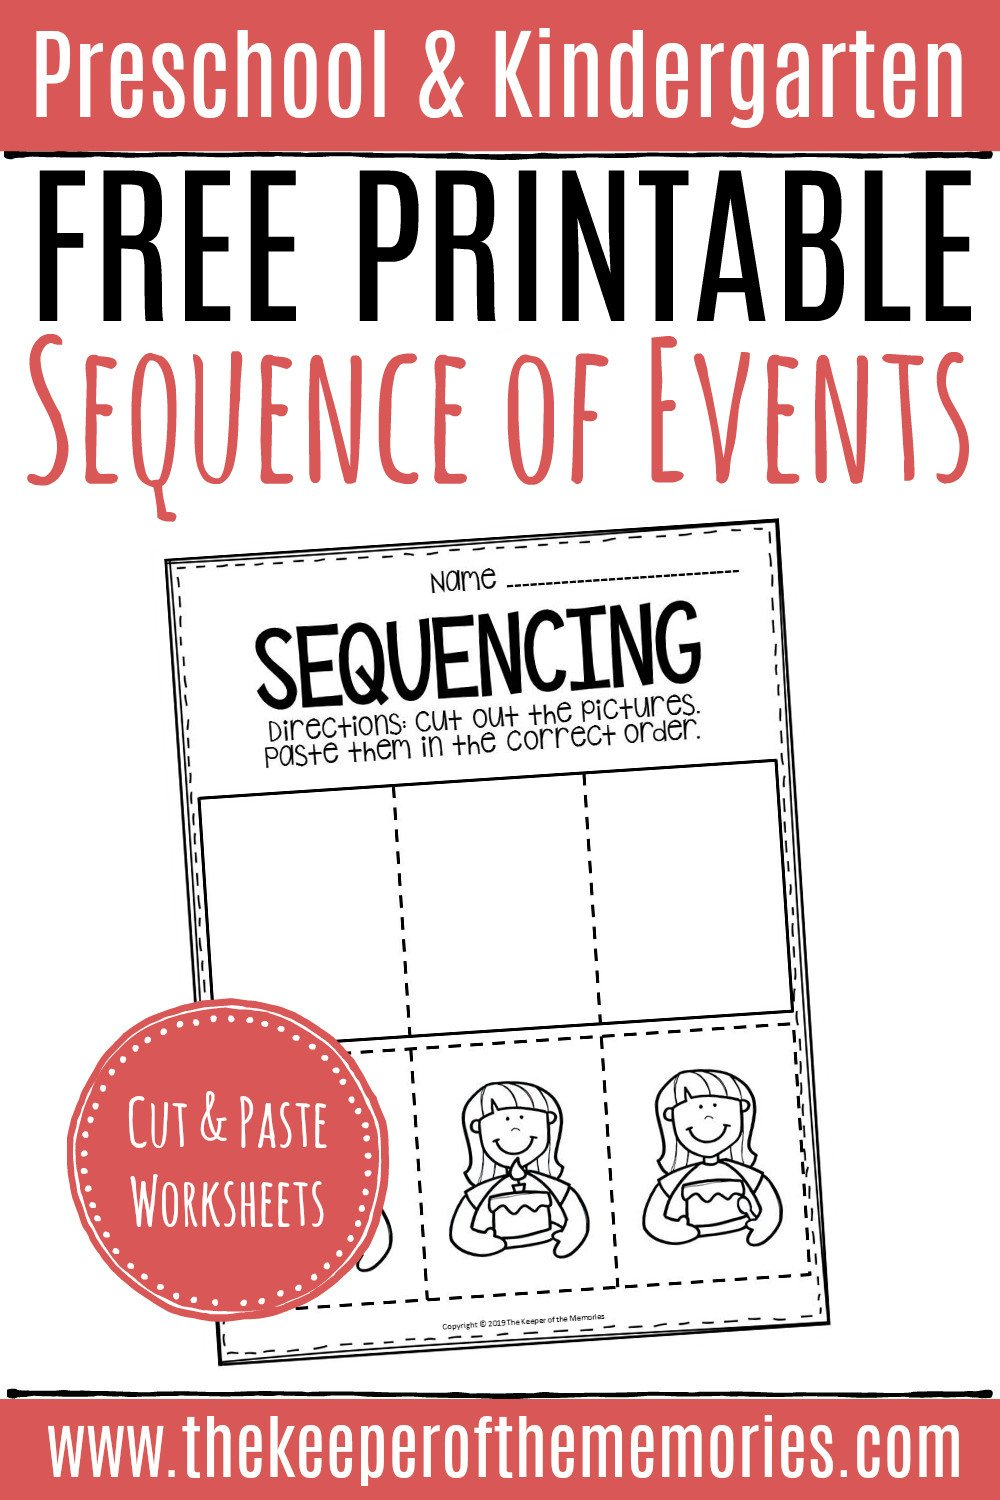 4th Grade Sequencing Worksheets Free Printable Sequence events Worksheets Sequencing Cut